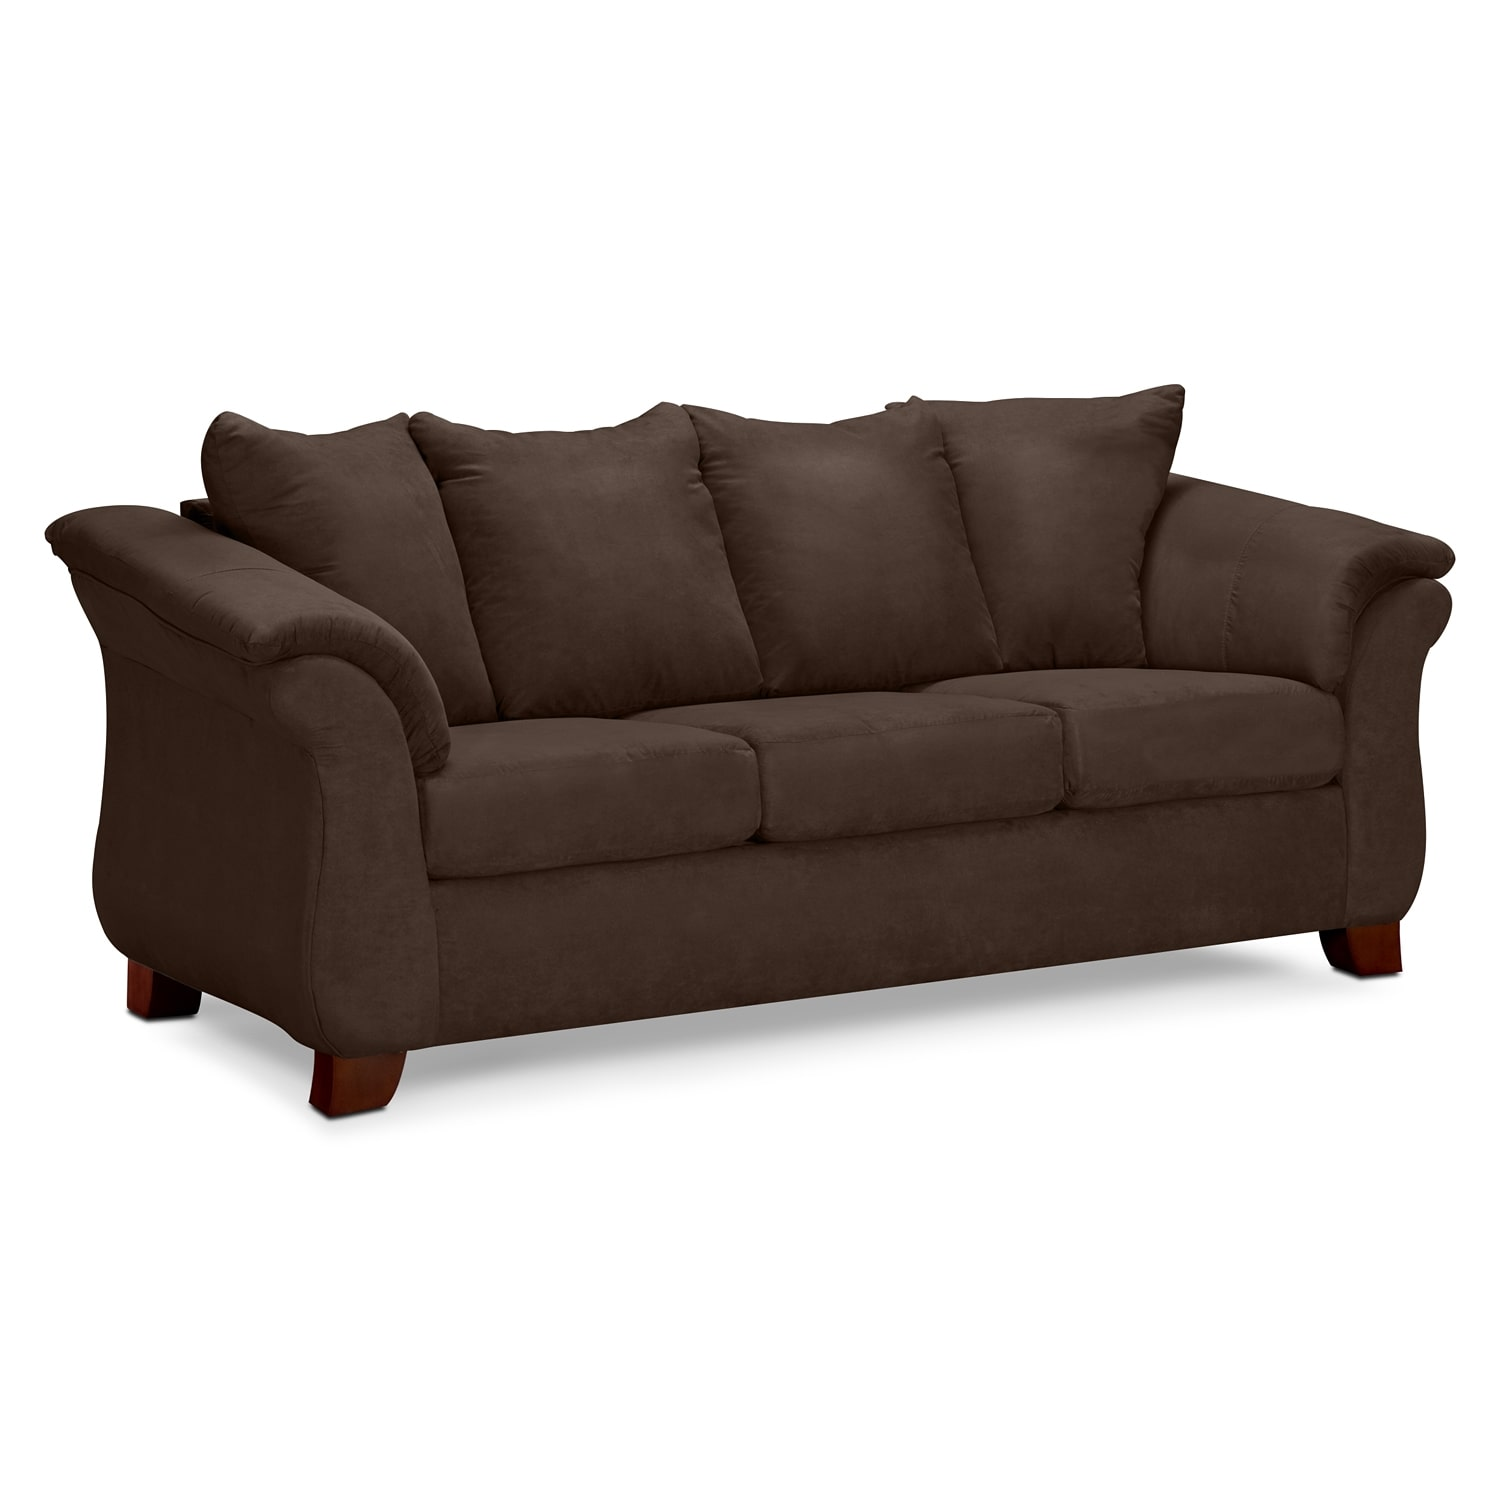 Adrian Sofa Chocolate Value City Furniture